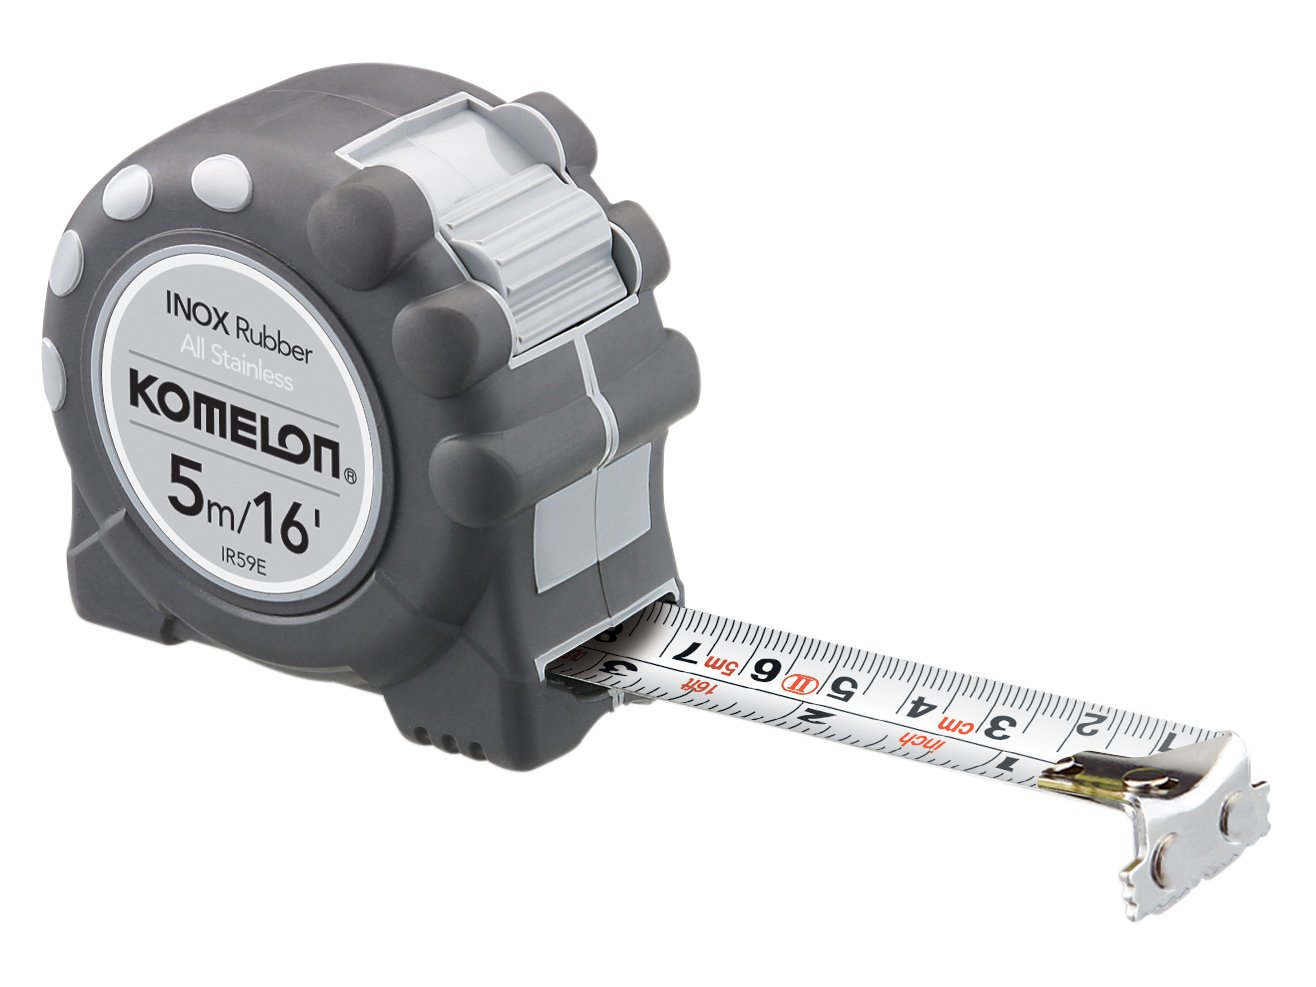 Komelon Inox Stainless Steel Tape Measure IR516E | 5m/16ft